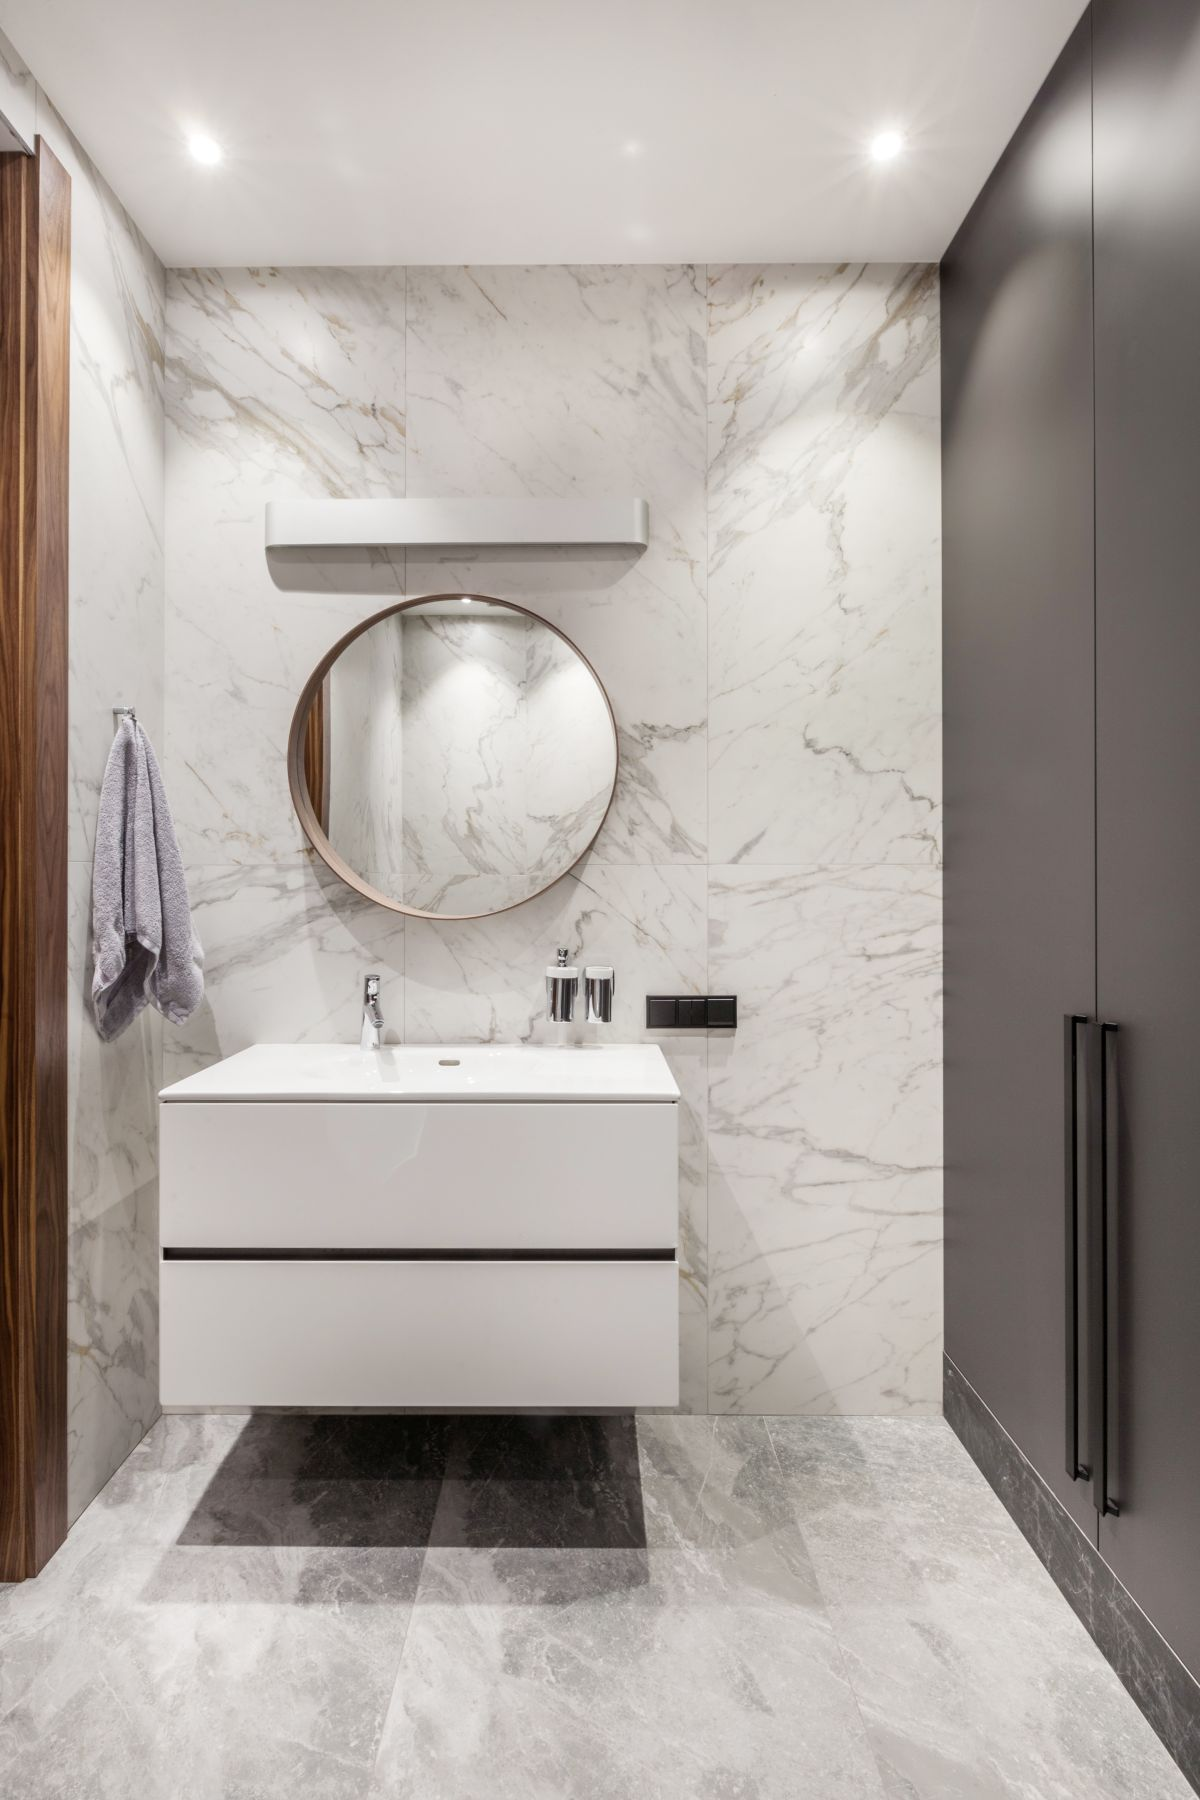 Marble really is timeless and this stylish powder room proves with its chic design and simplicity